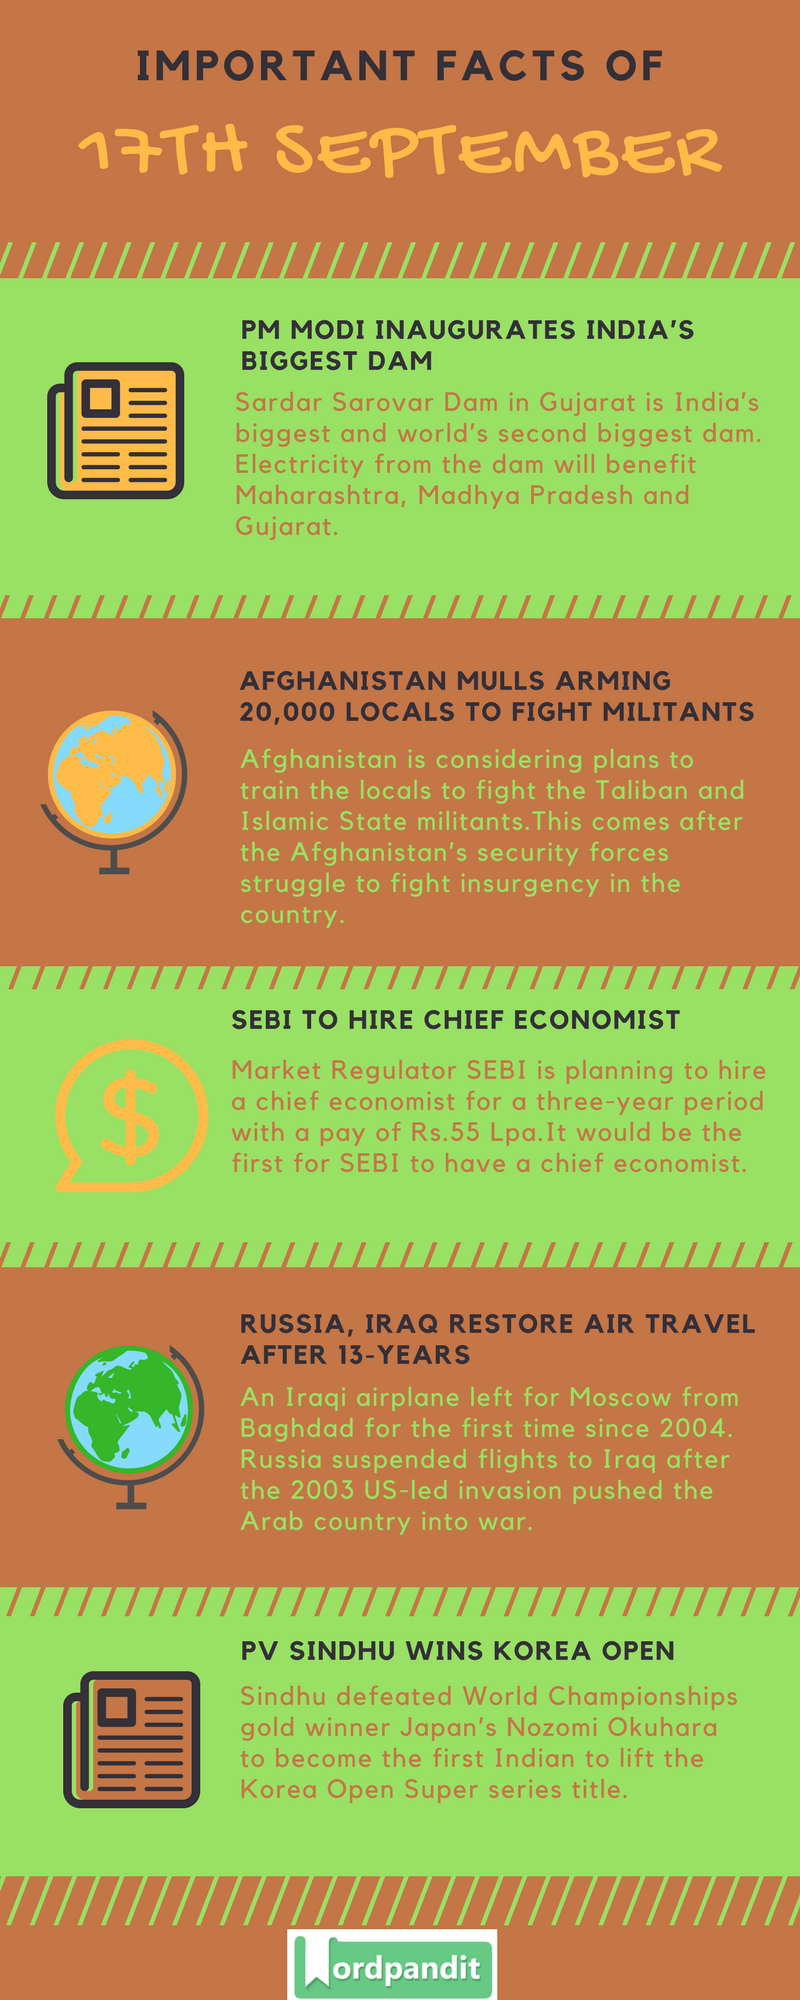 Daily-Current-Affairs-17-september-2017-Current-Affairs-Quiz-september-17-2017-Current-Affairs-Infographic